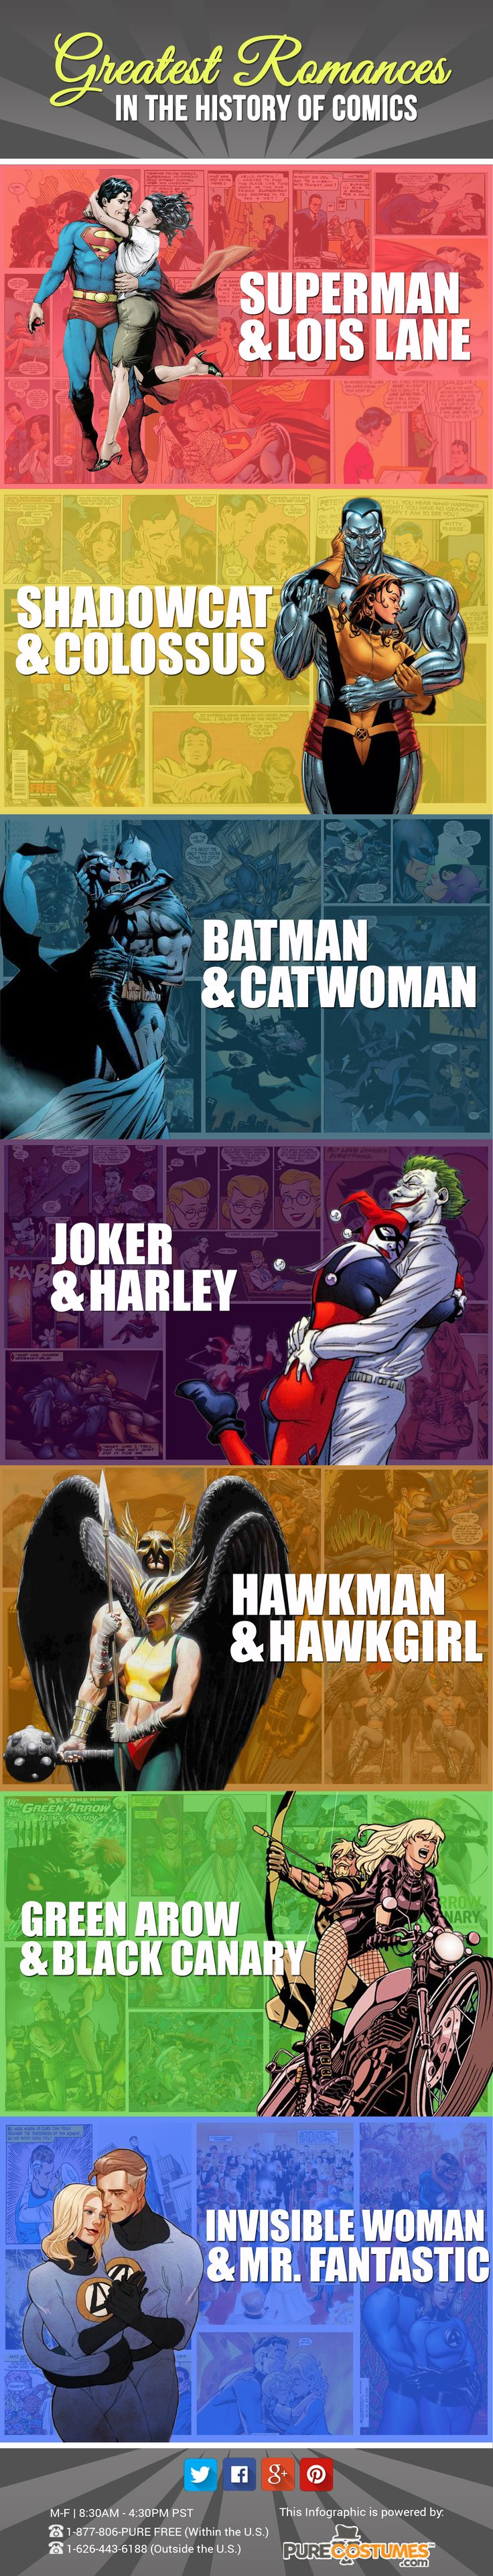 Comic Book Couples Infographic http://geekxgirls.com/article.php?ID=5679